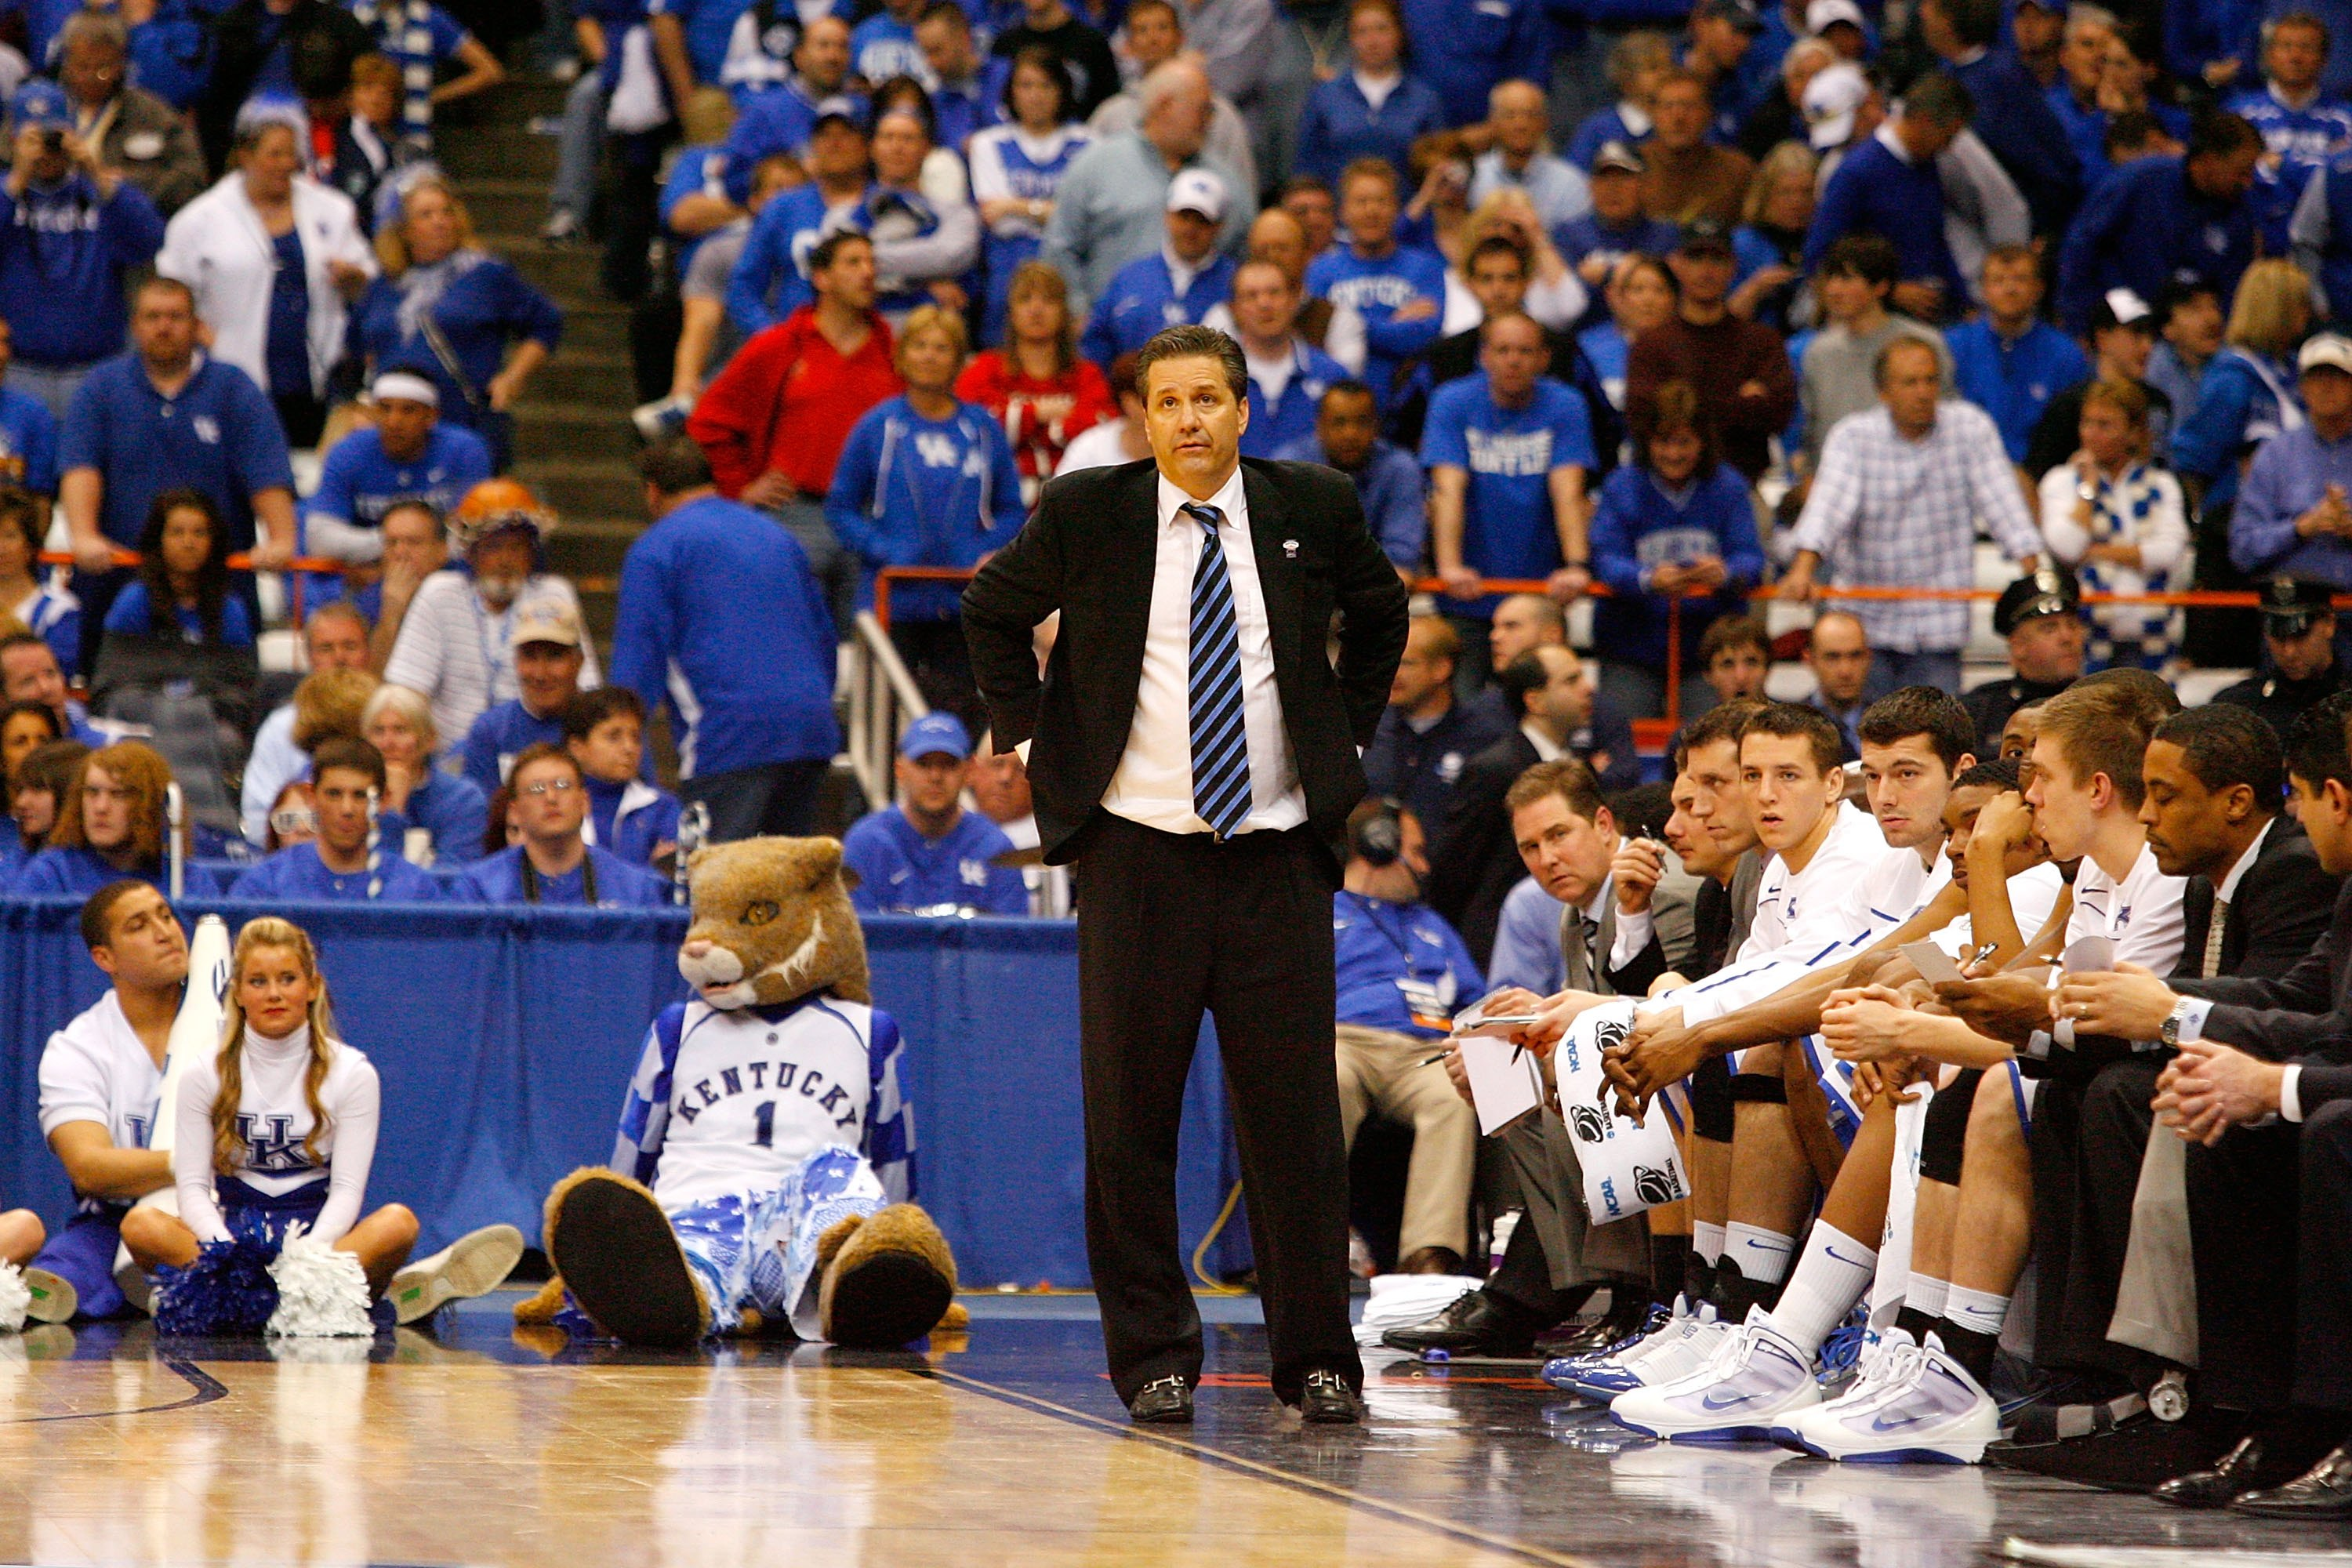 SYRACUSE, NY - MARCH 25:  Head coach John Calipari of the Kentucky Wildcats looks on as he coaches against the Cornell Big Red during the east regional semifinal of the 2010 NCAA men's basketball tournament at the Carrier Dome on March 25, 2010 in Syracus